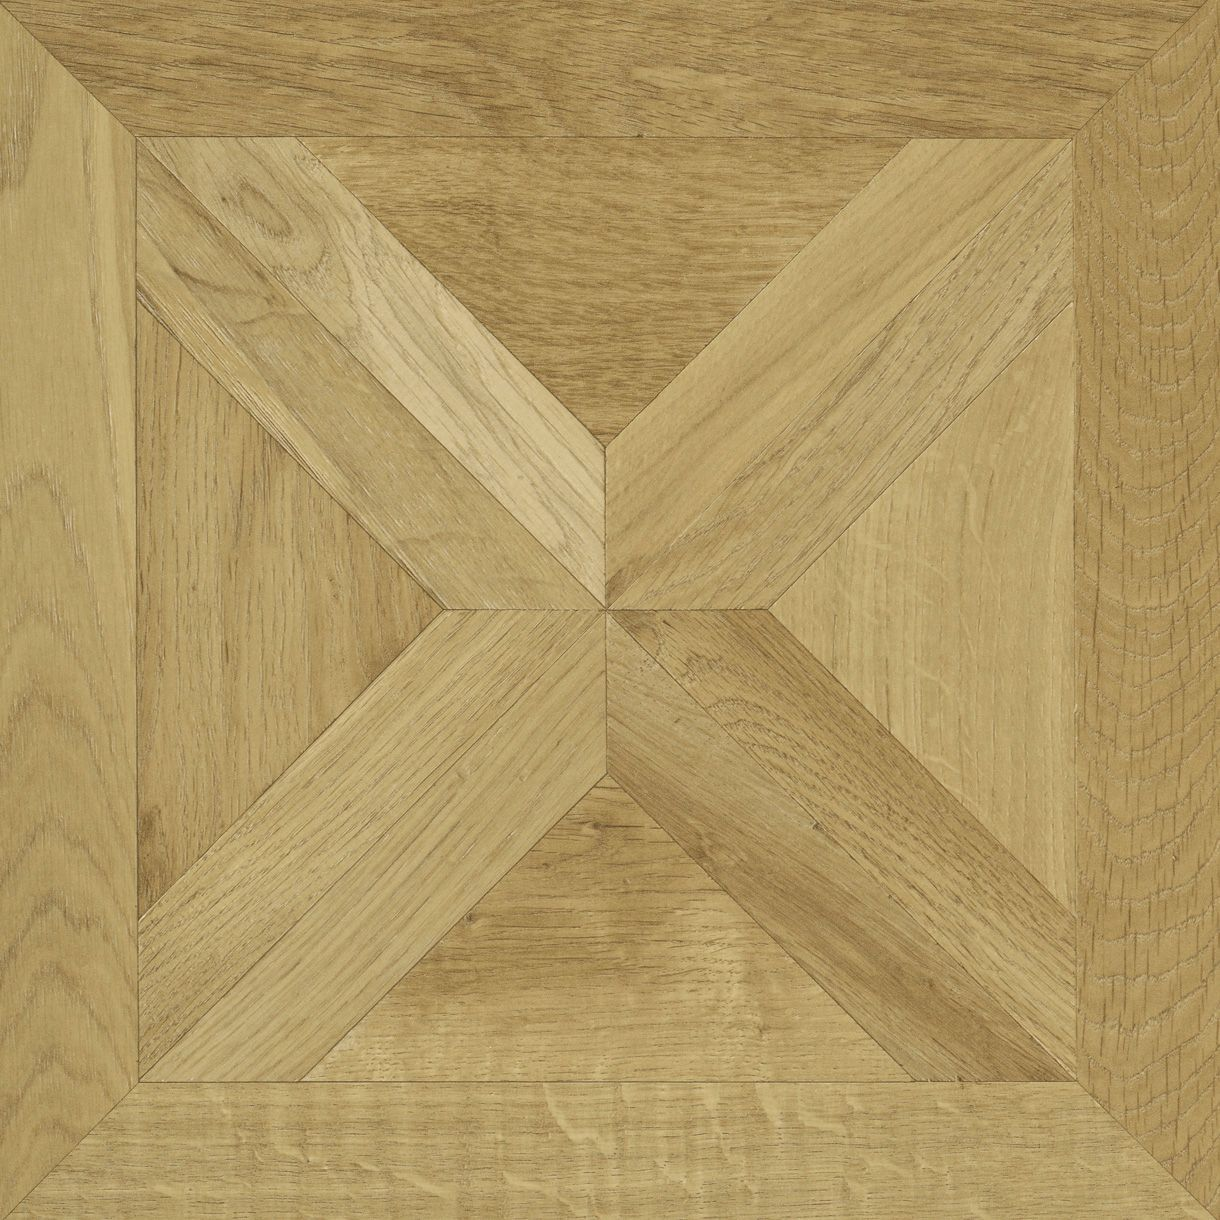 Staccato natural oak parquet effect laminate flooring 0113 m staccato natural oak parquet effect laminate flooring 0113 m sample departments diy at bq dailygadgetfo Images